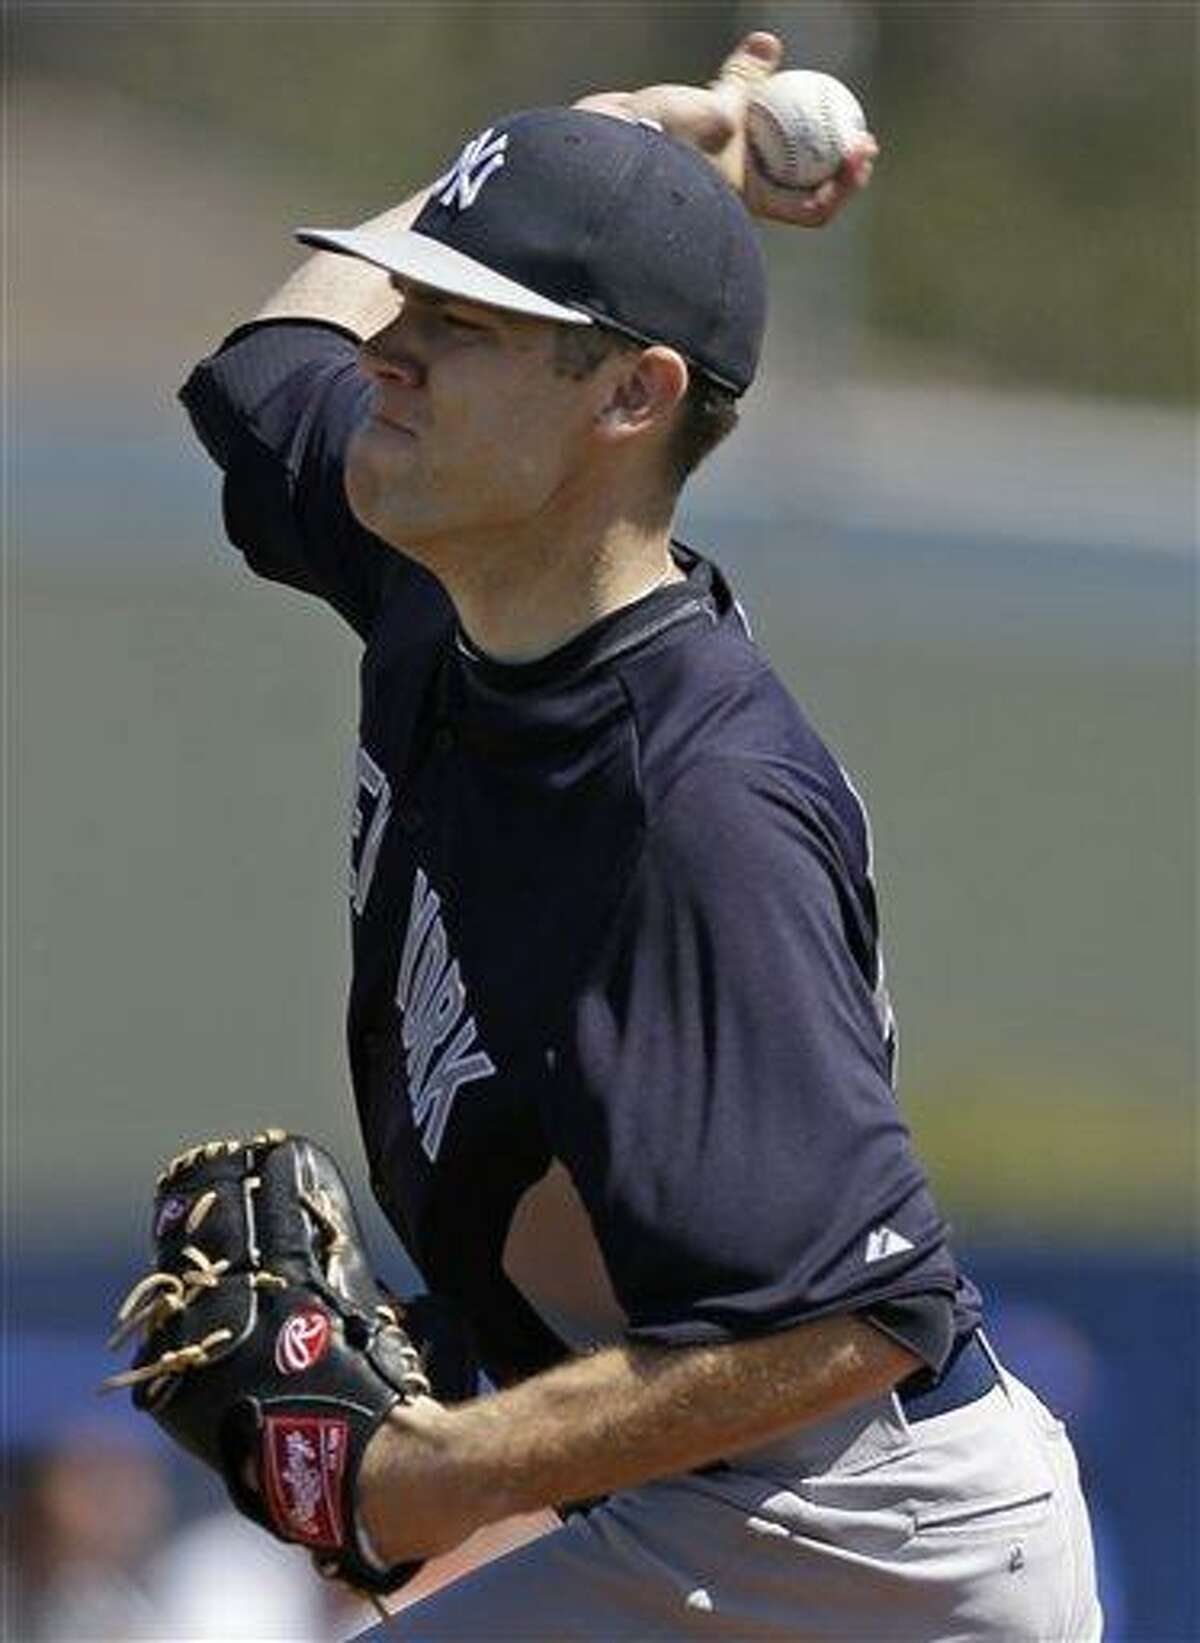 REMOVES REFERENCE TO STEINBRENNER FIELD - New York Yankees relief pitcher David Phelps (41) delivers in the fifth inning against the Toronto Blue Jays in a spring training baseball game in Dunedin, Fla., Sunday, March 10, 2013. (AP Photo/Kathy Willens)